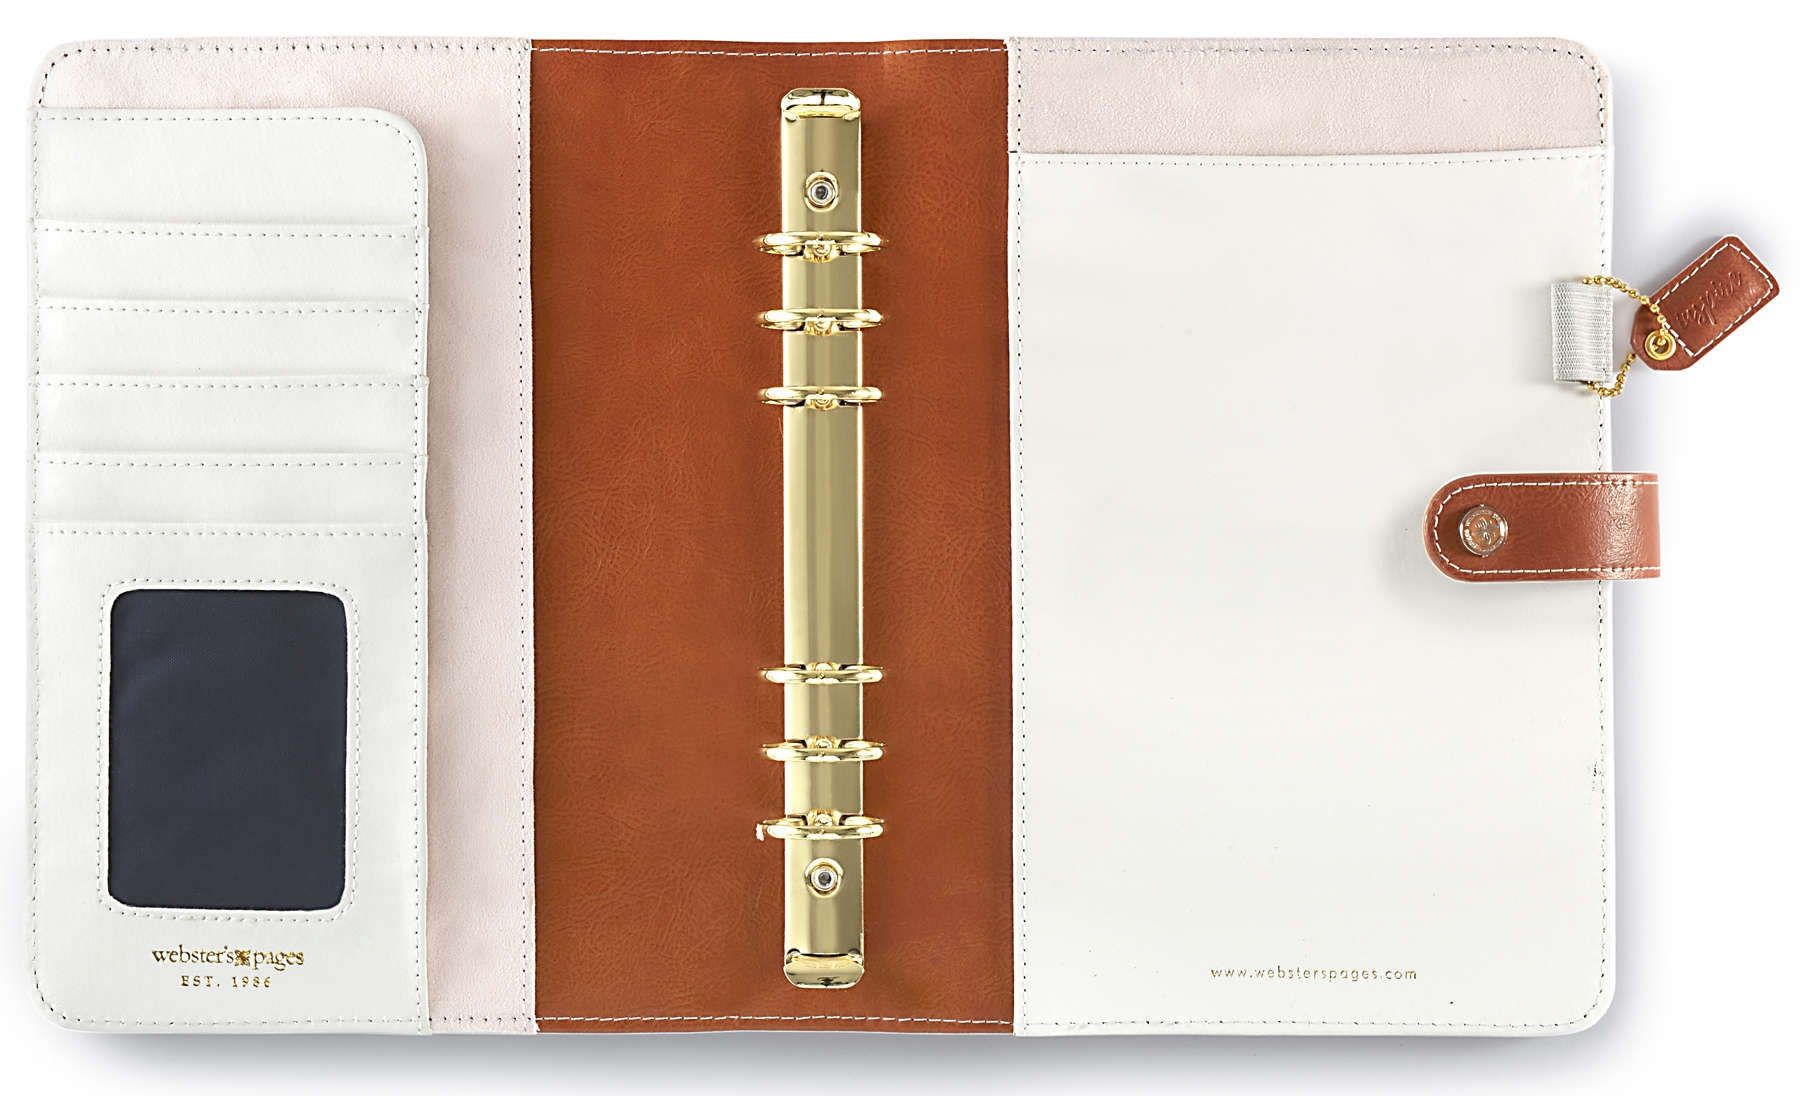 Webster's Pages A5 Planner